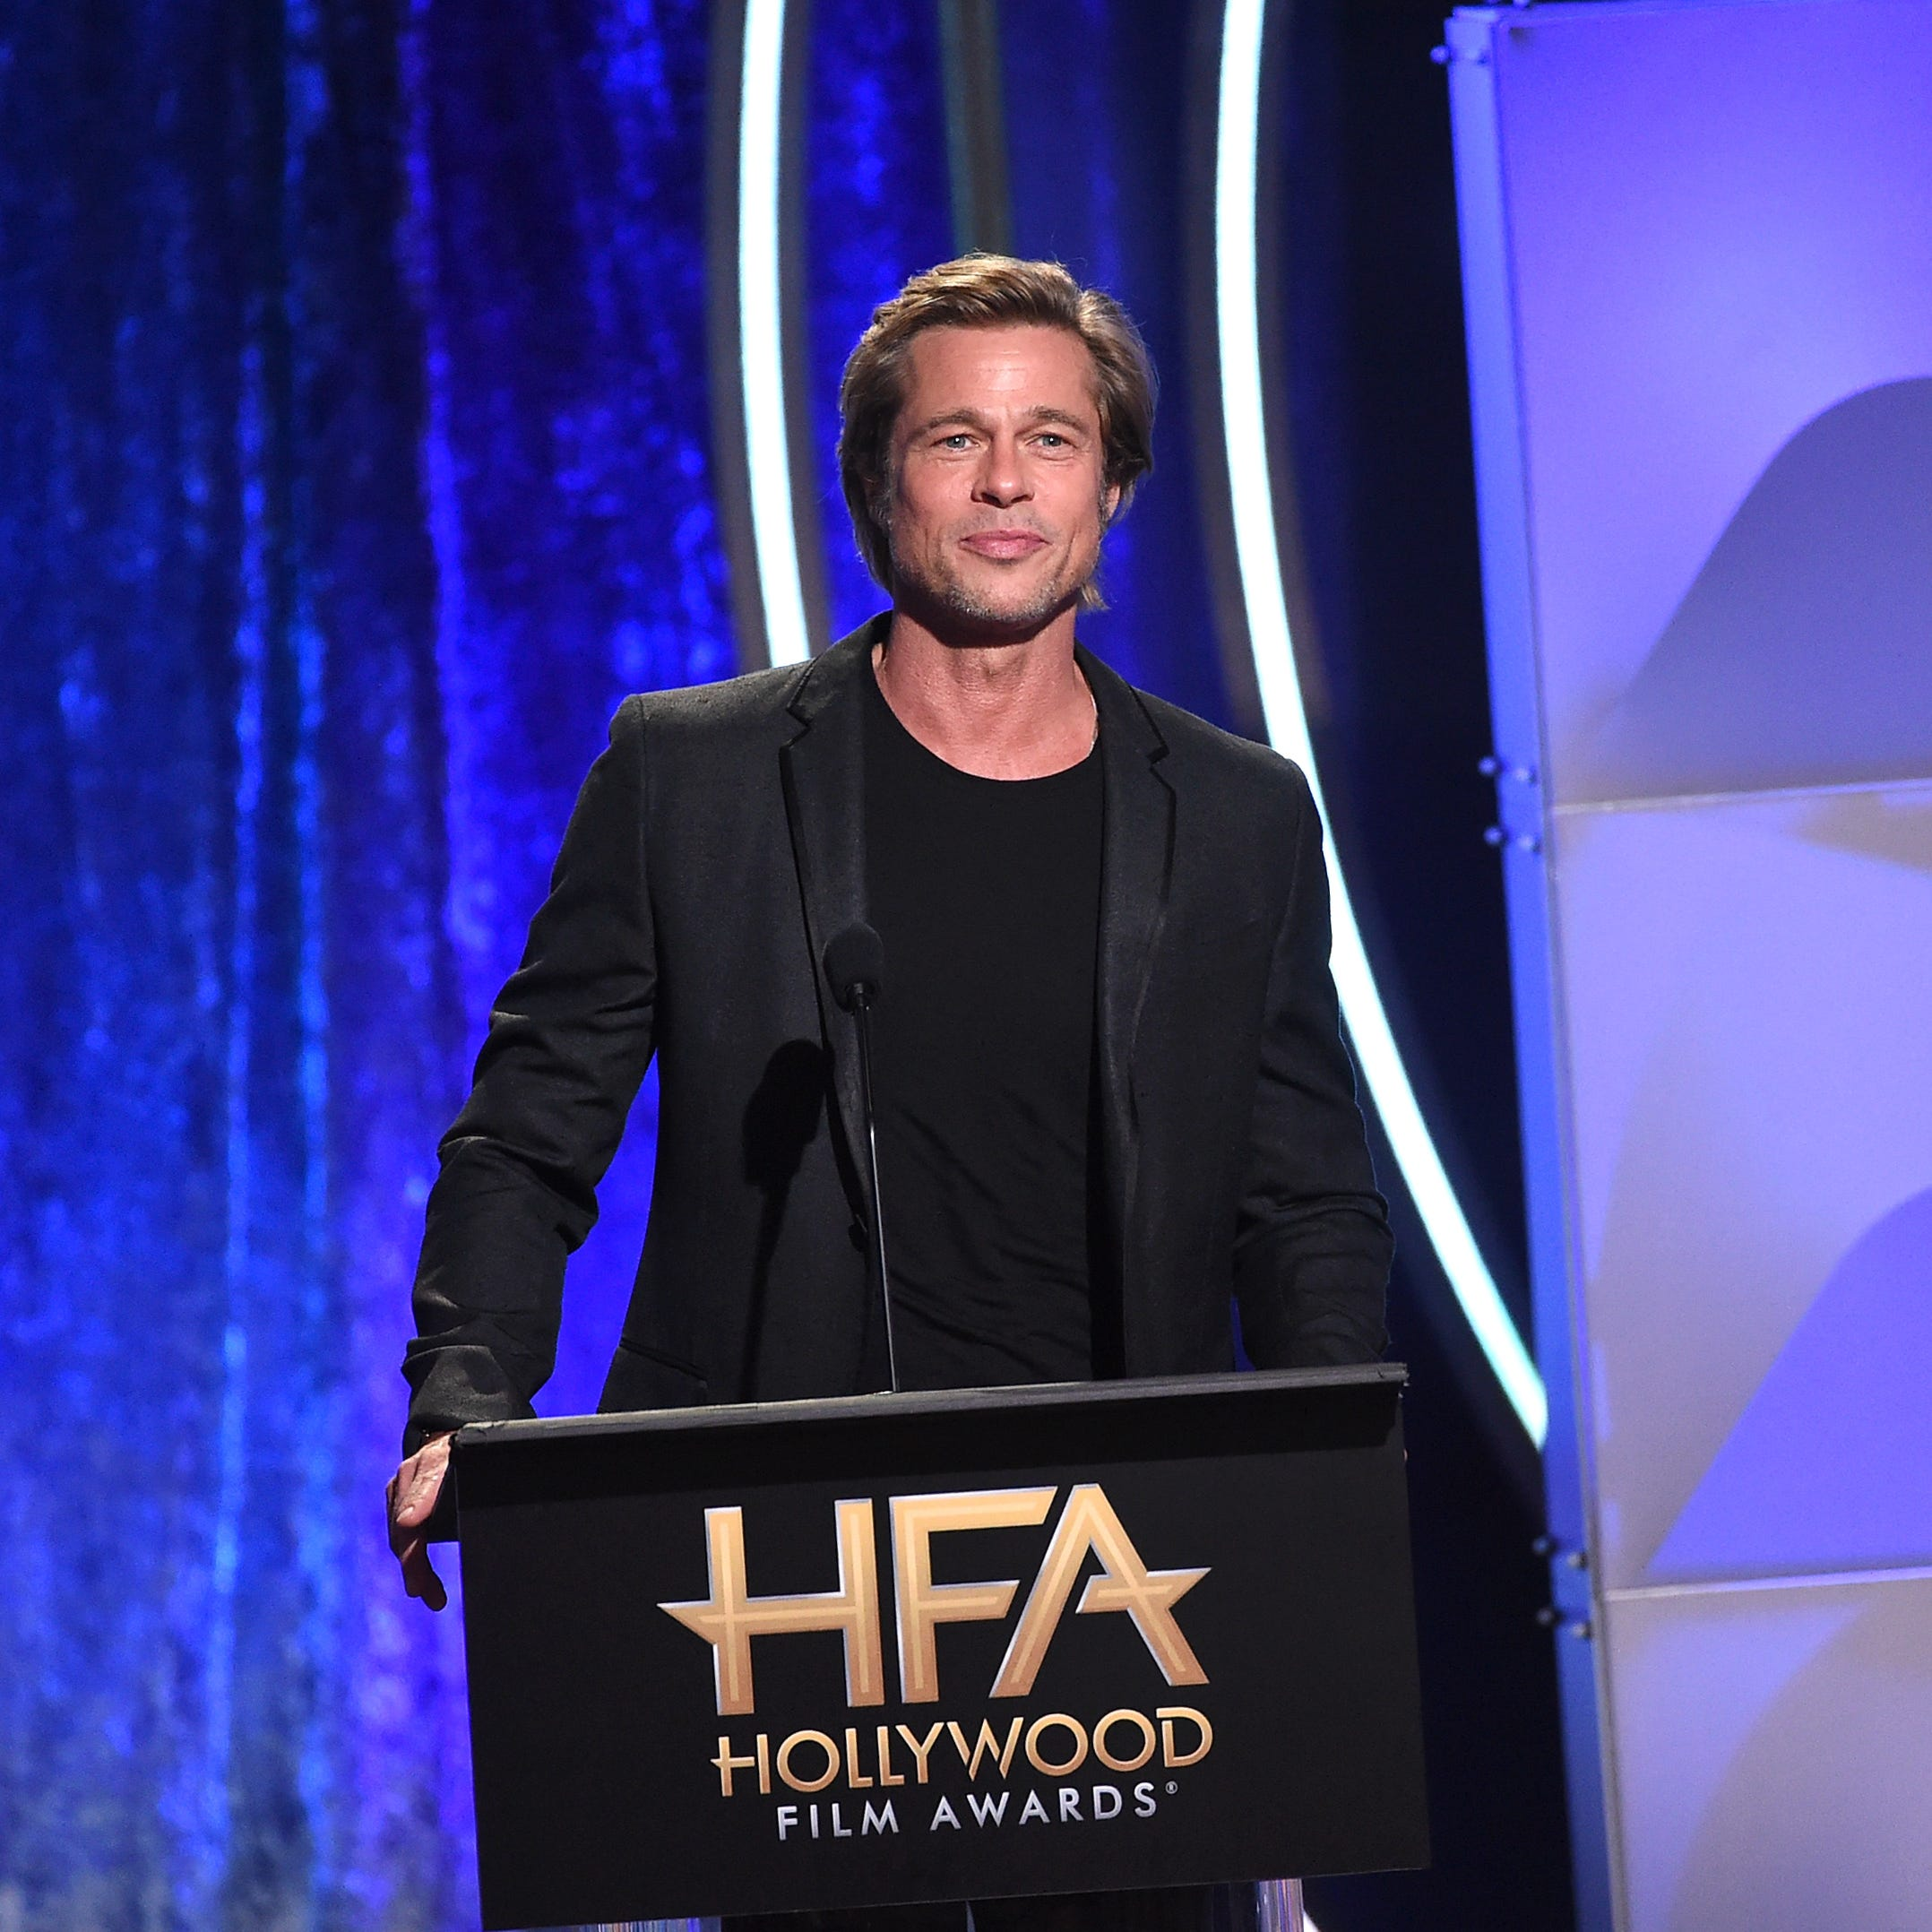 BEVERLY HILLS, CA - NOVEMBER 04:  Brad Pitt speaks onstage during the 22nd Annual Hollywood Film Awards at The Beverly Hilton Hotel on November 4, 2018 in Beverly Hills, California.  (Photo by Kevin Winter/Getty Images for HFA) ORG XMIT: 775237952 ORIG FILE ID: 1057413492